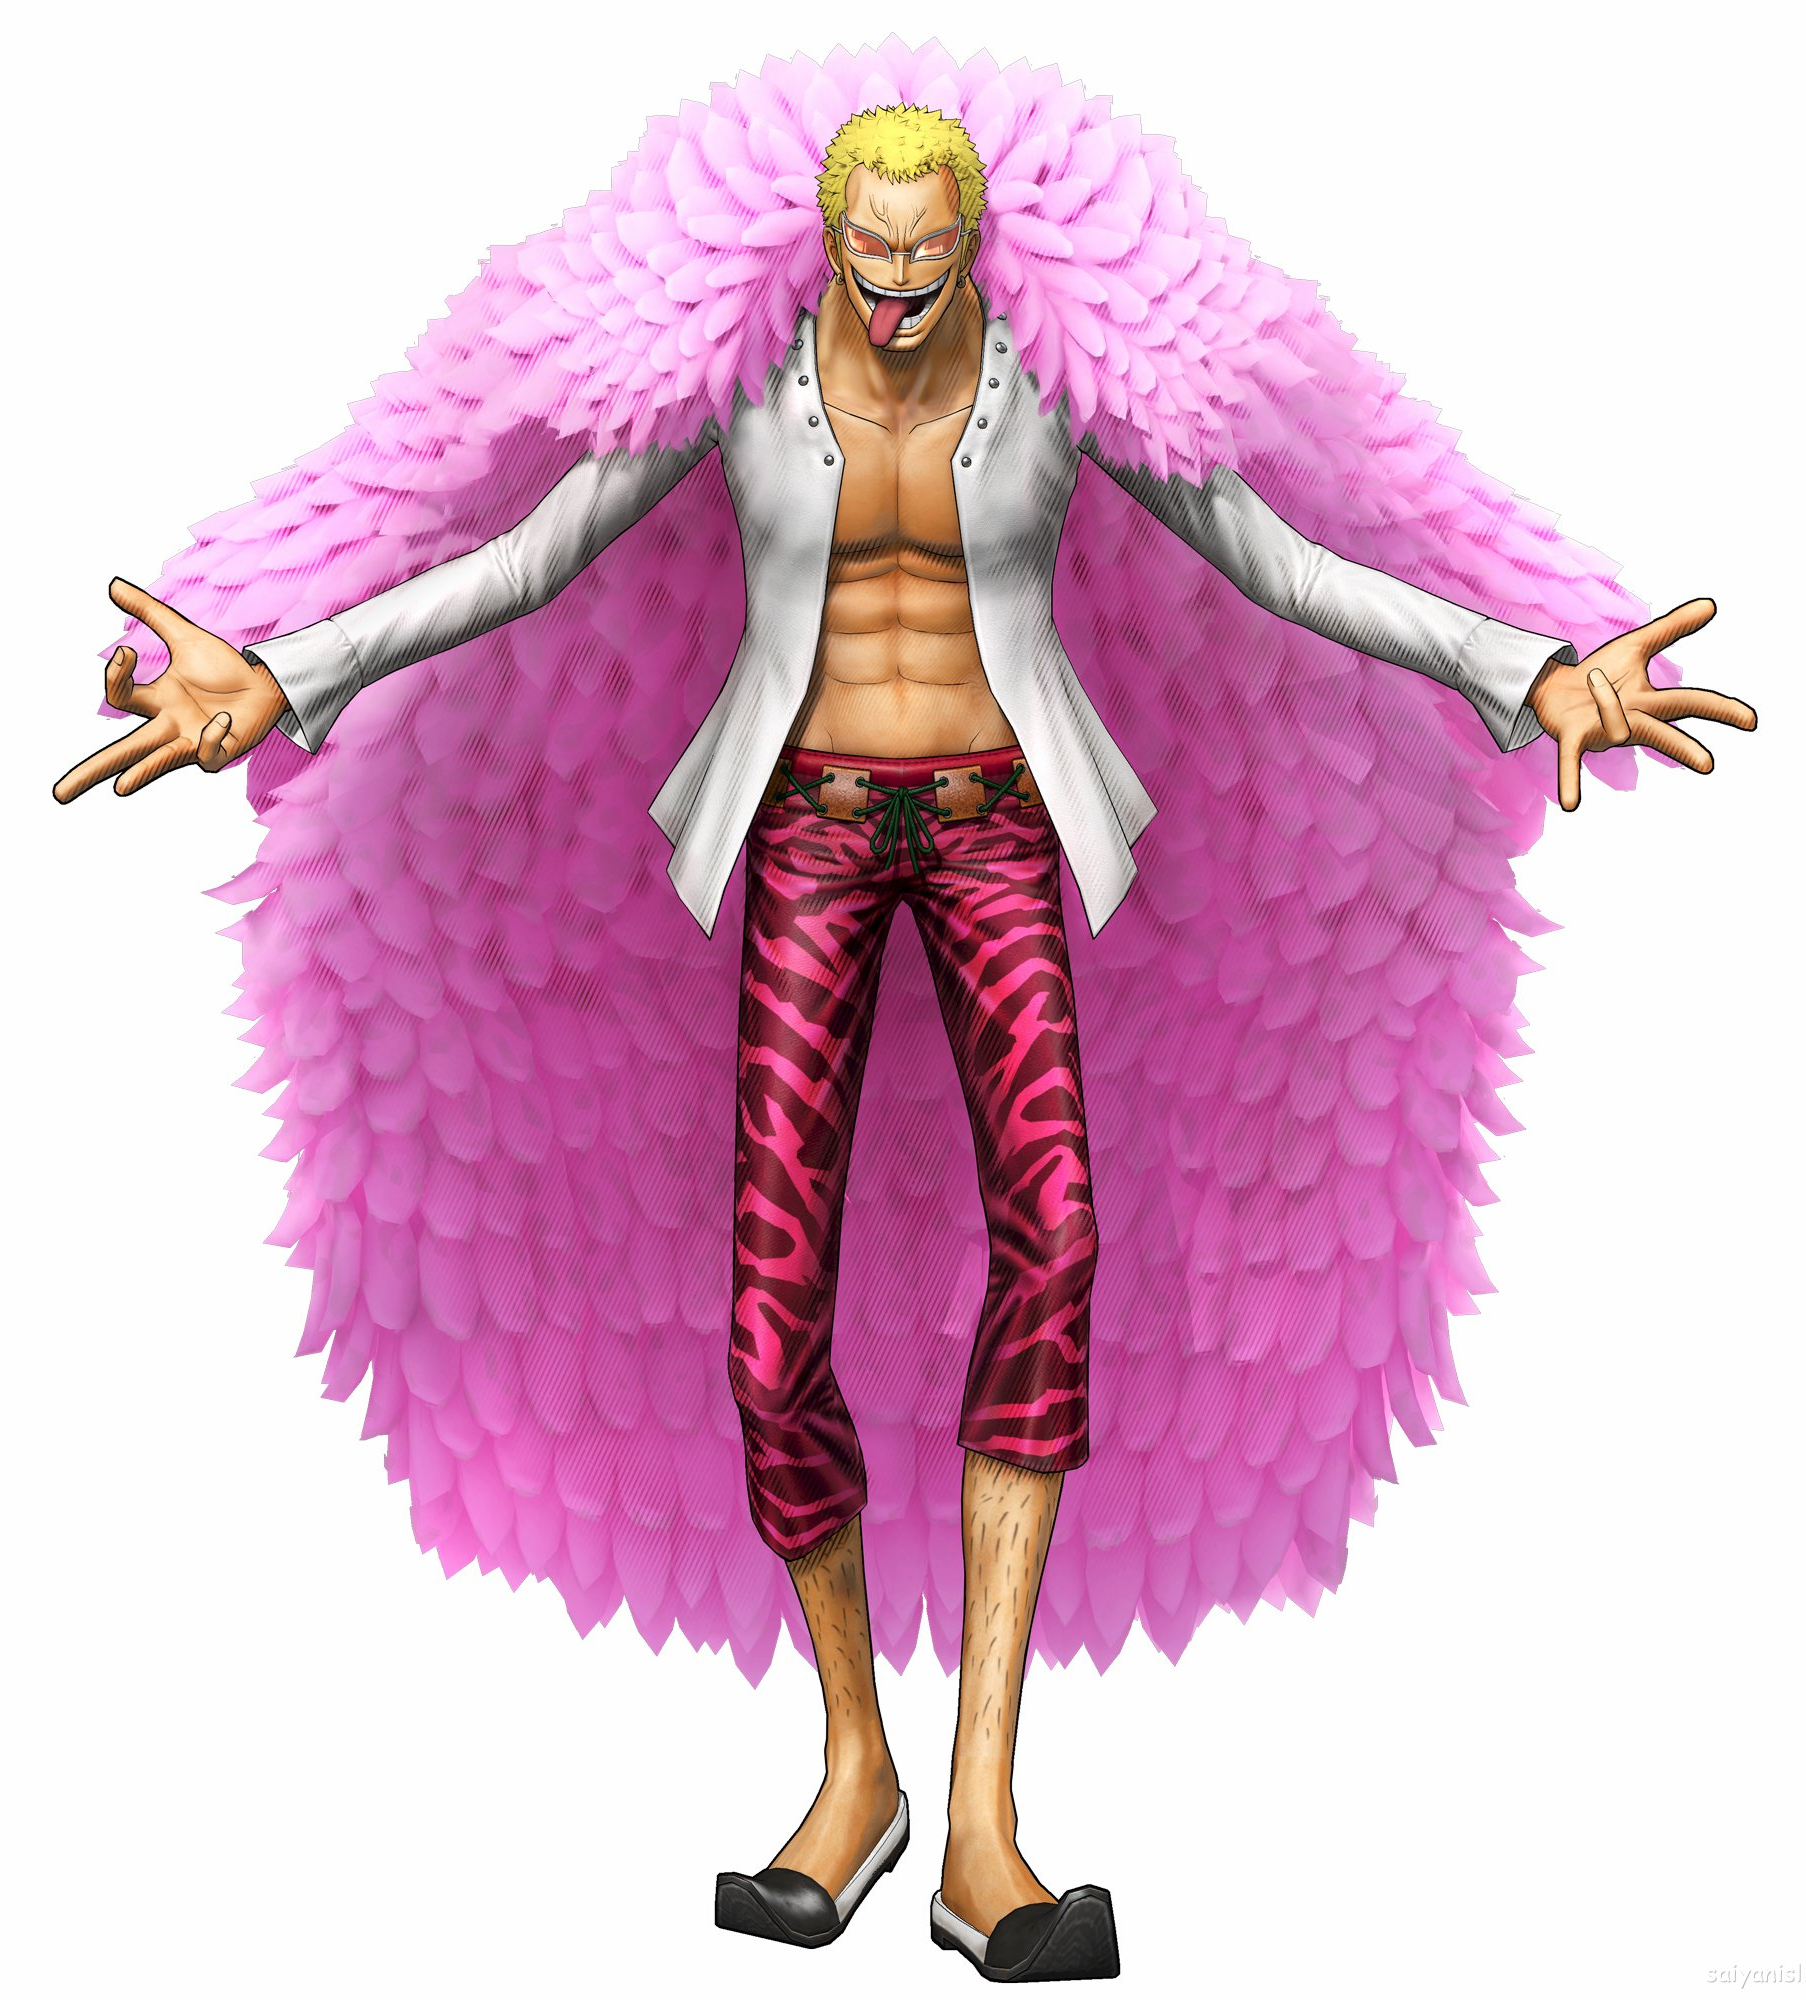 Marco Pirate Warriors 3: Fichier:Doflamingo Pirate Warriors 3.png